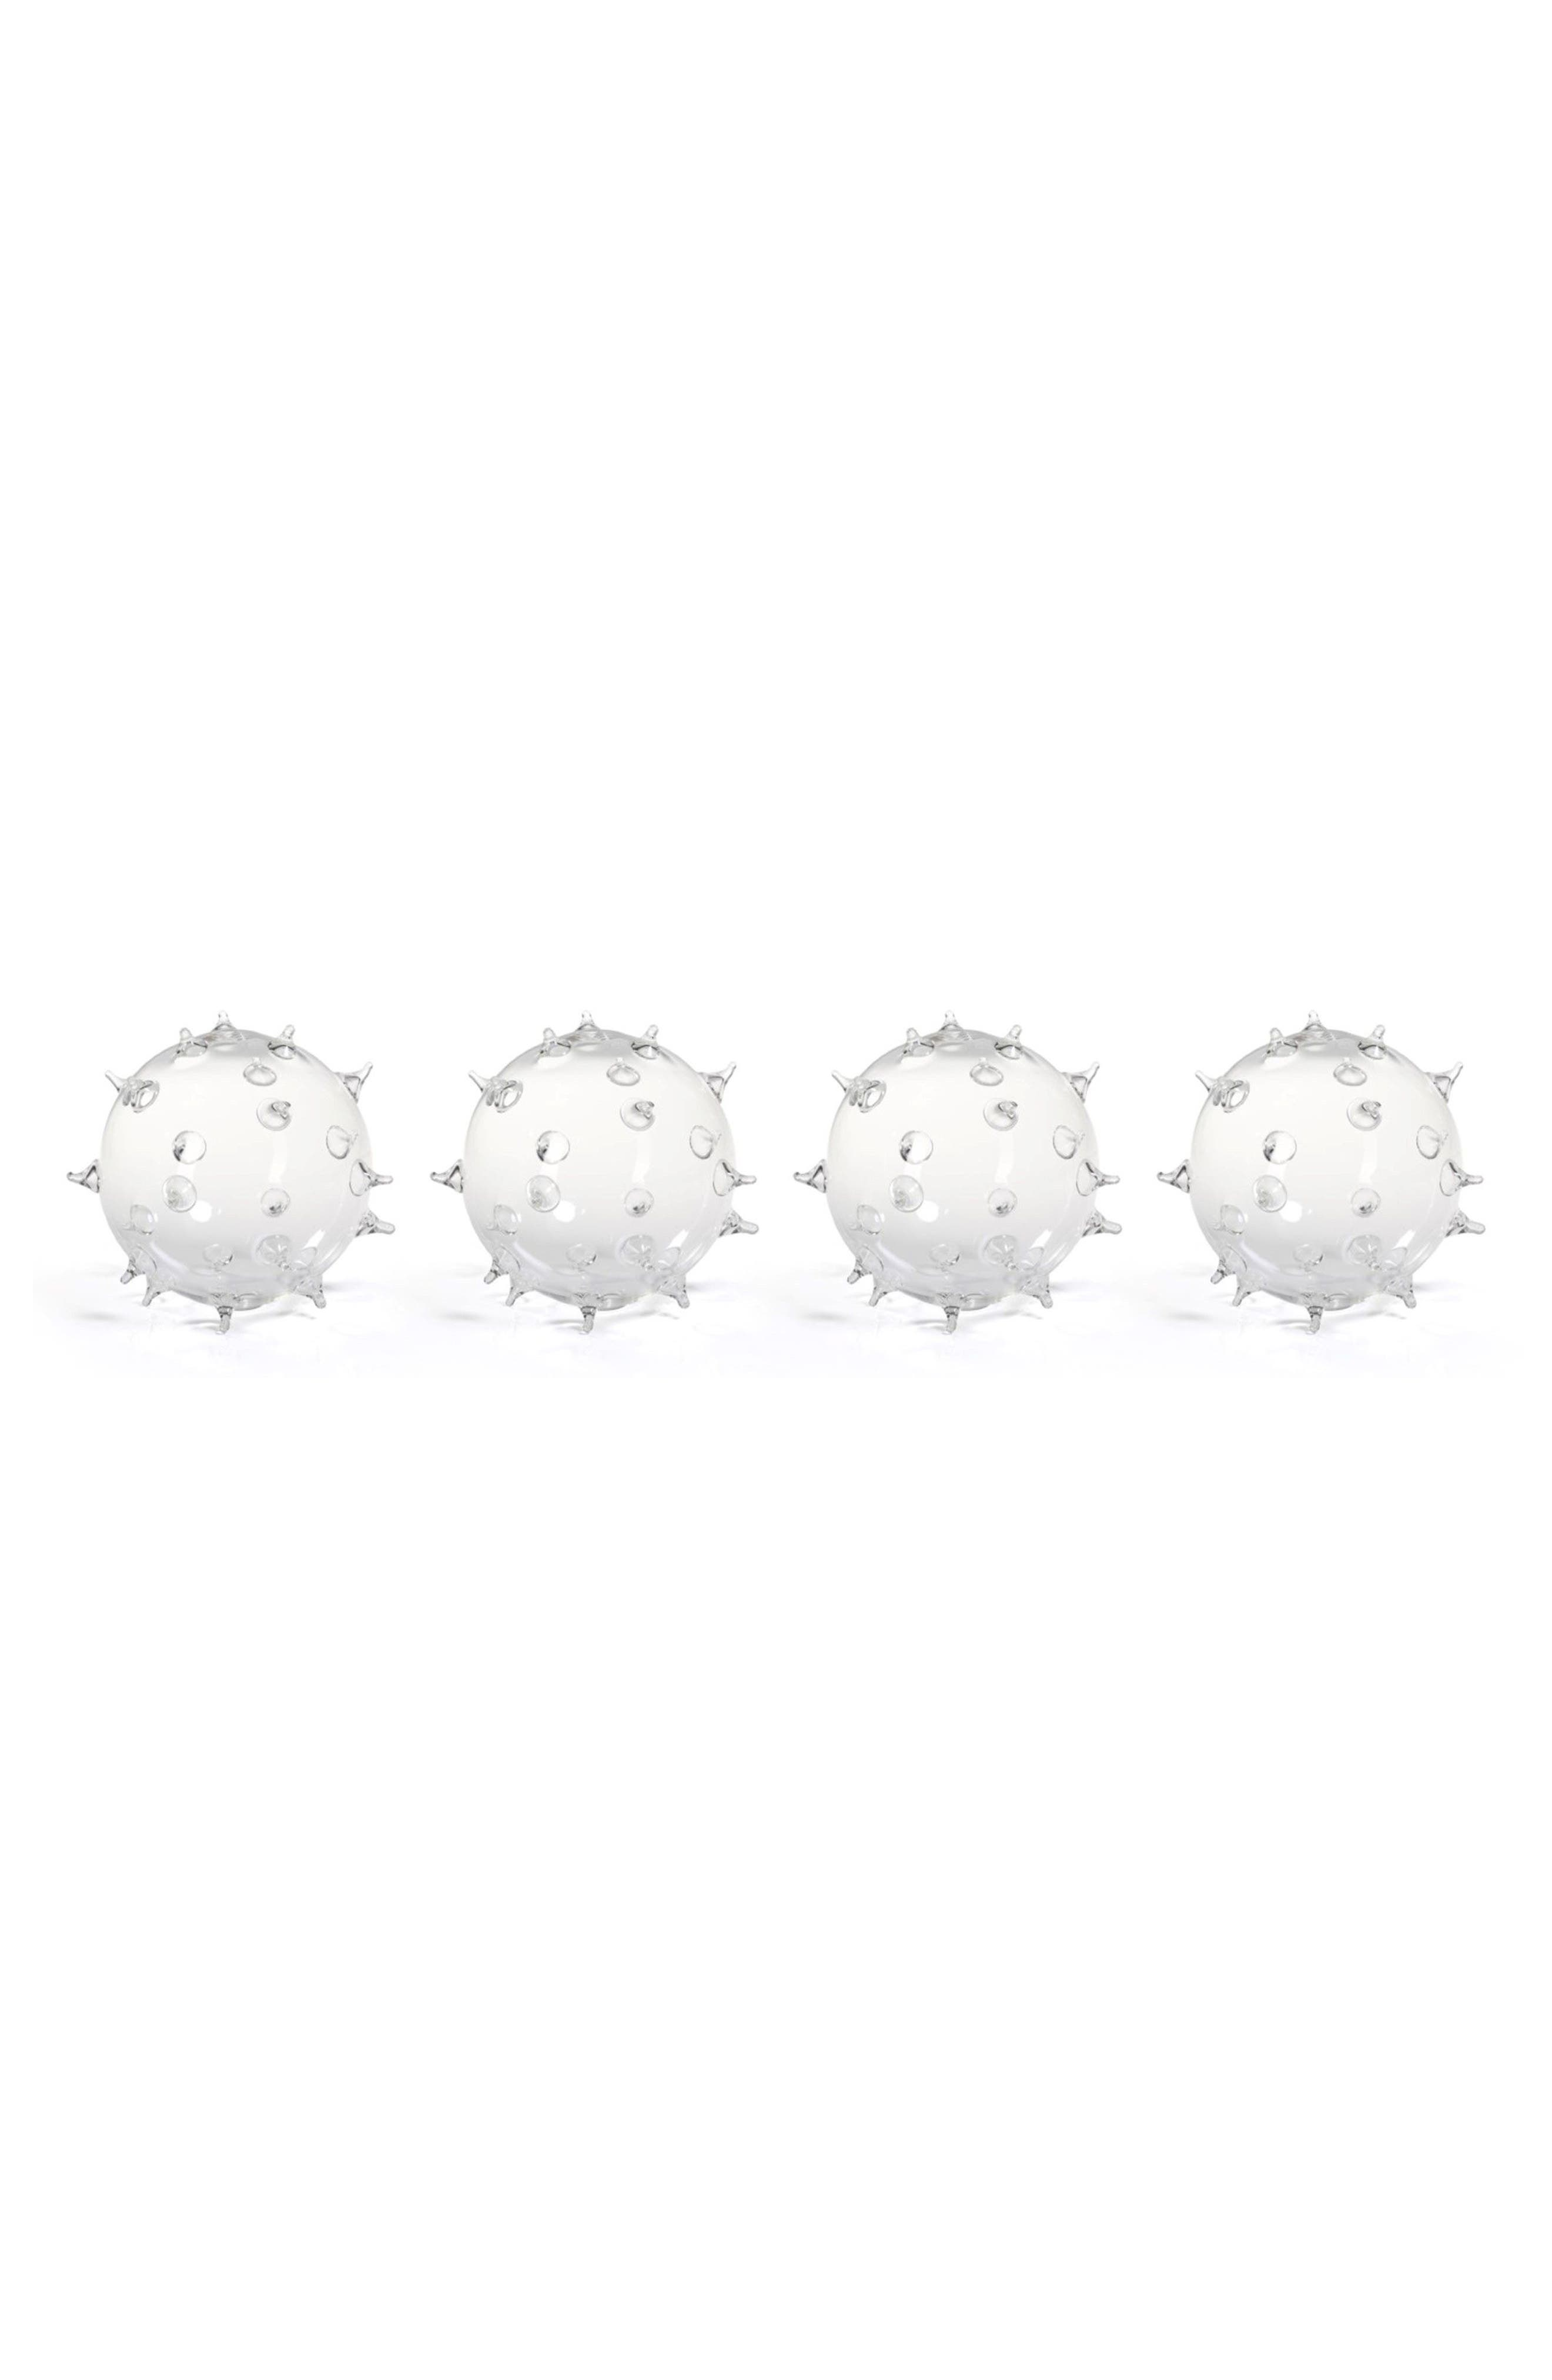 Main Image - Zodax Suri Set of 4 Spiked Glass Vases